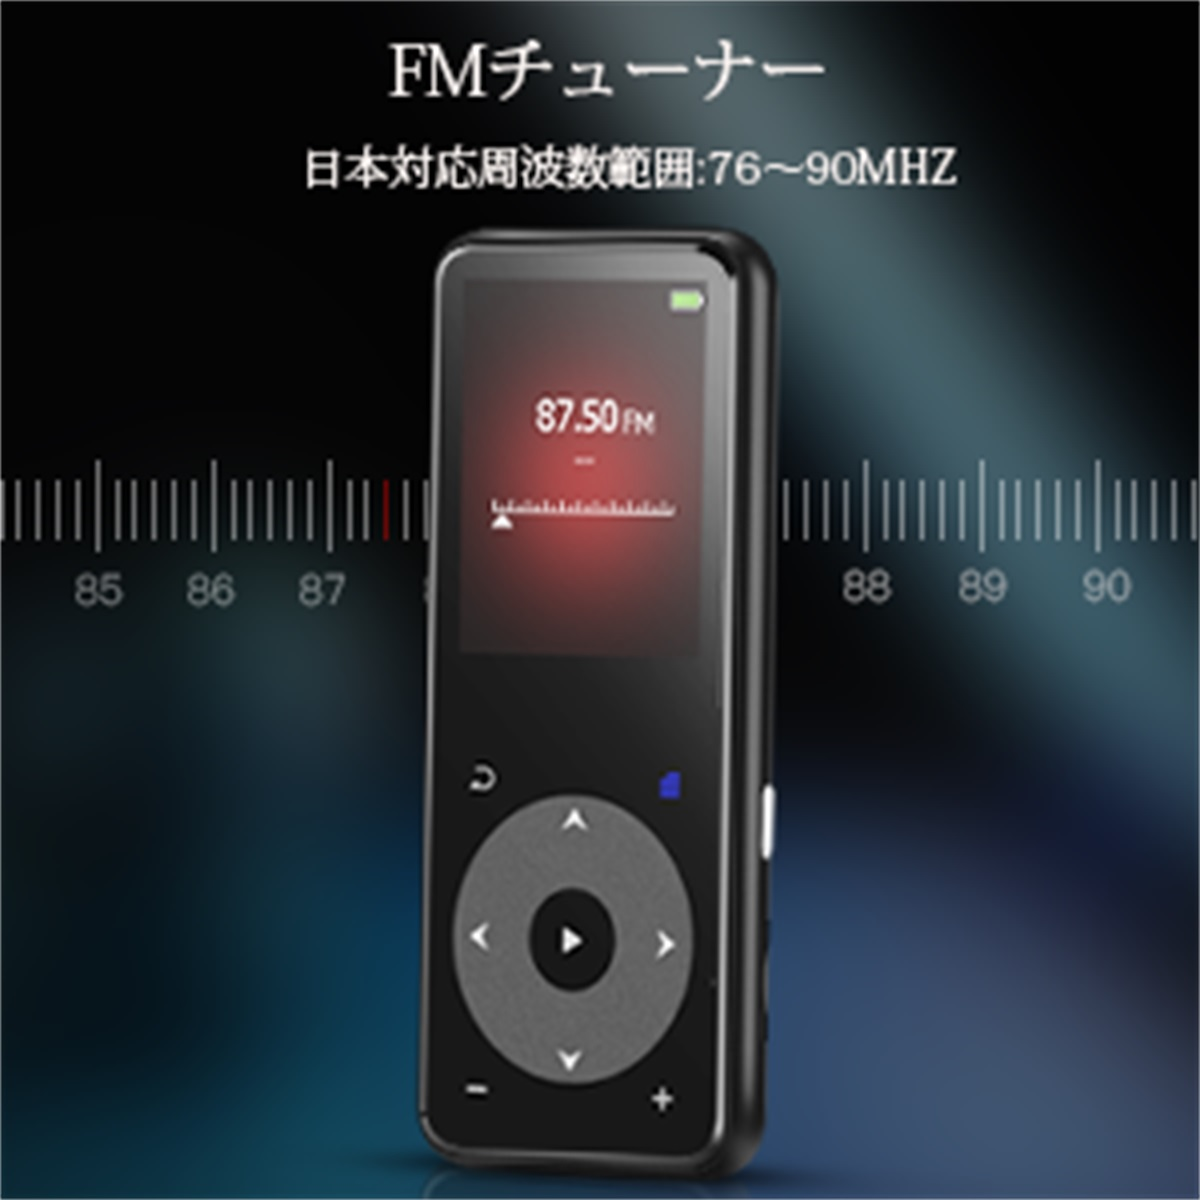 AGPTEK music player MP3 player MP3 player digital audio player bluetooth  deployment Hi-Fi lossless sound quality product made in shining touch  button